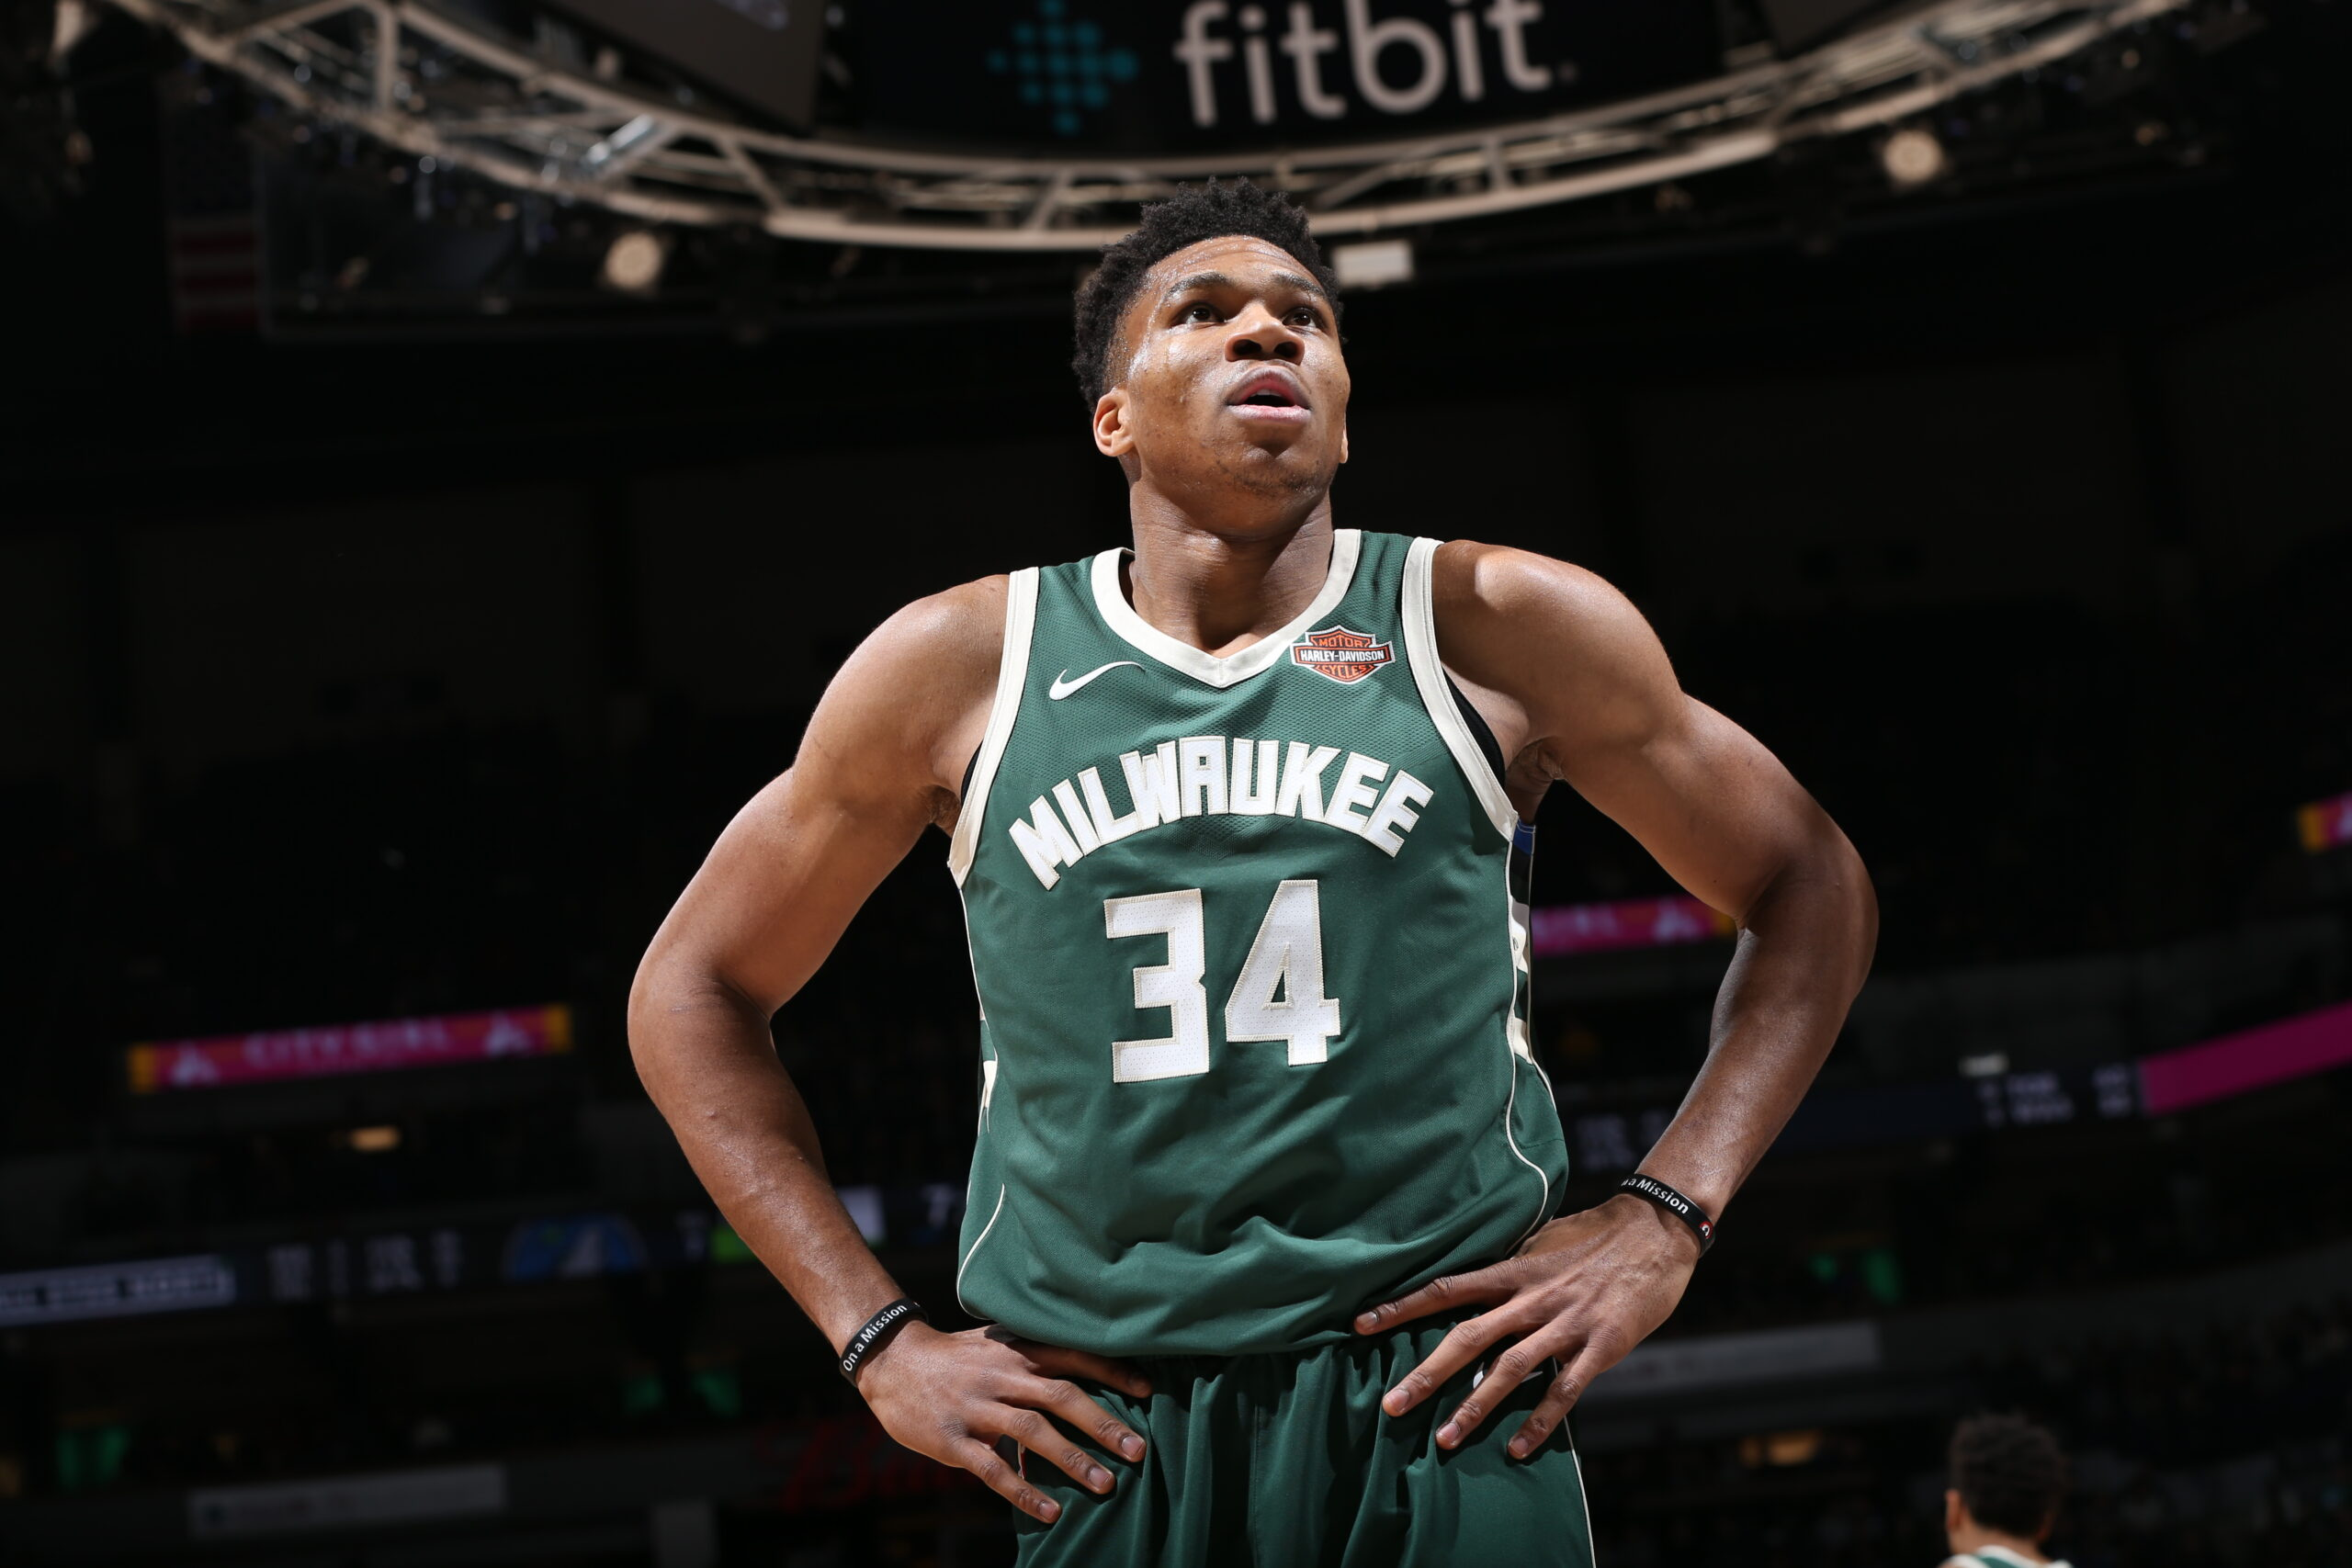 Giannis Antetokounmpo focused on season, not contract situation